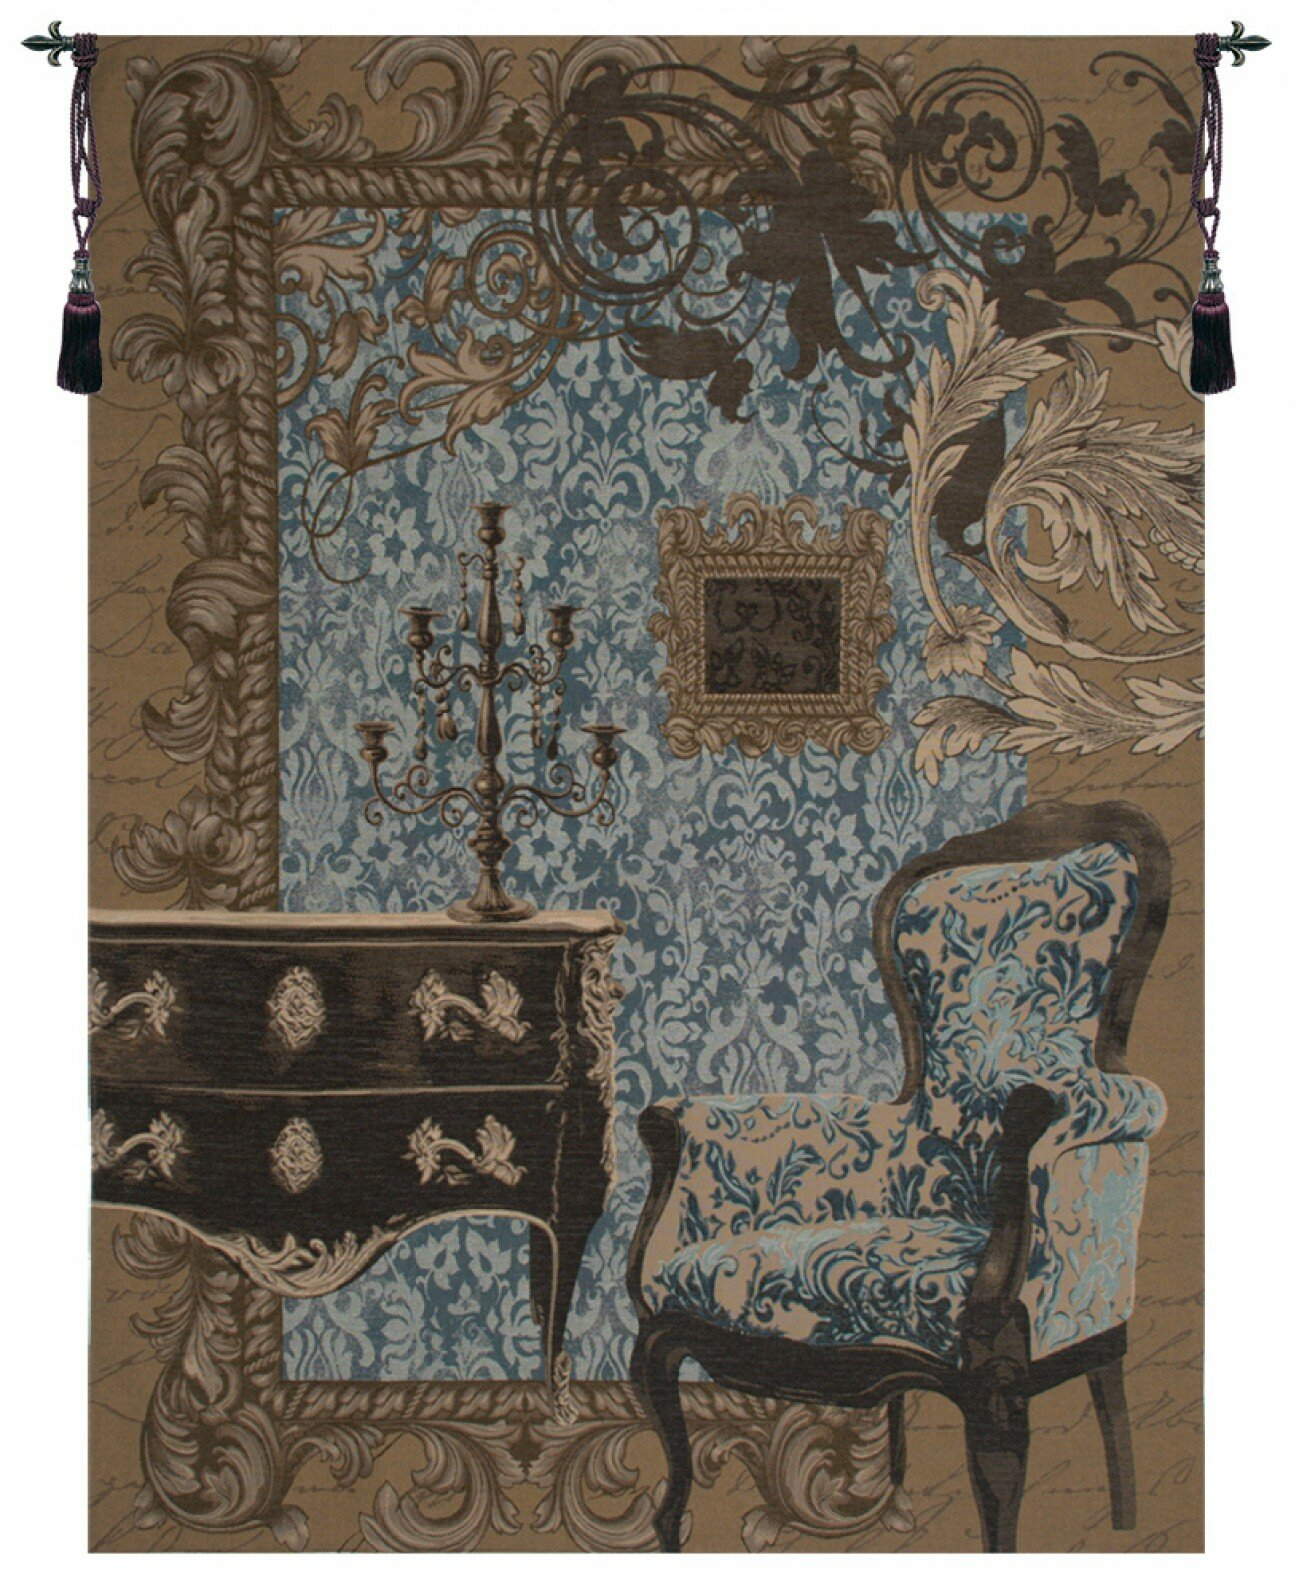 Mobilier Louis Xvi European Tapestry In Most Popular Blended Fabric Gallanteries European Wall Hangings (View 2 of 20)